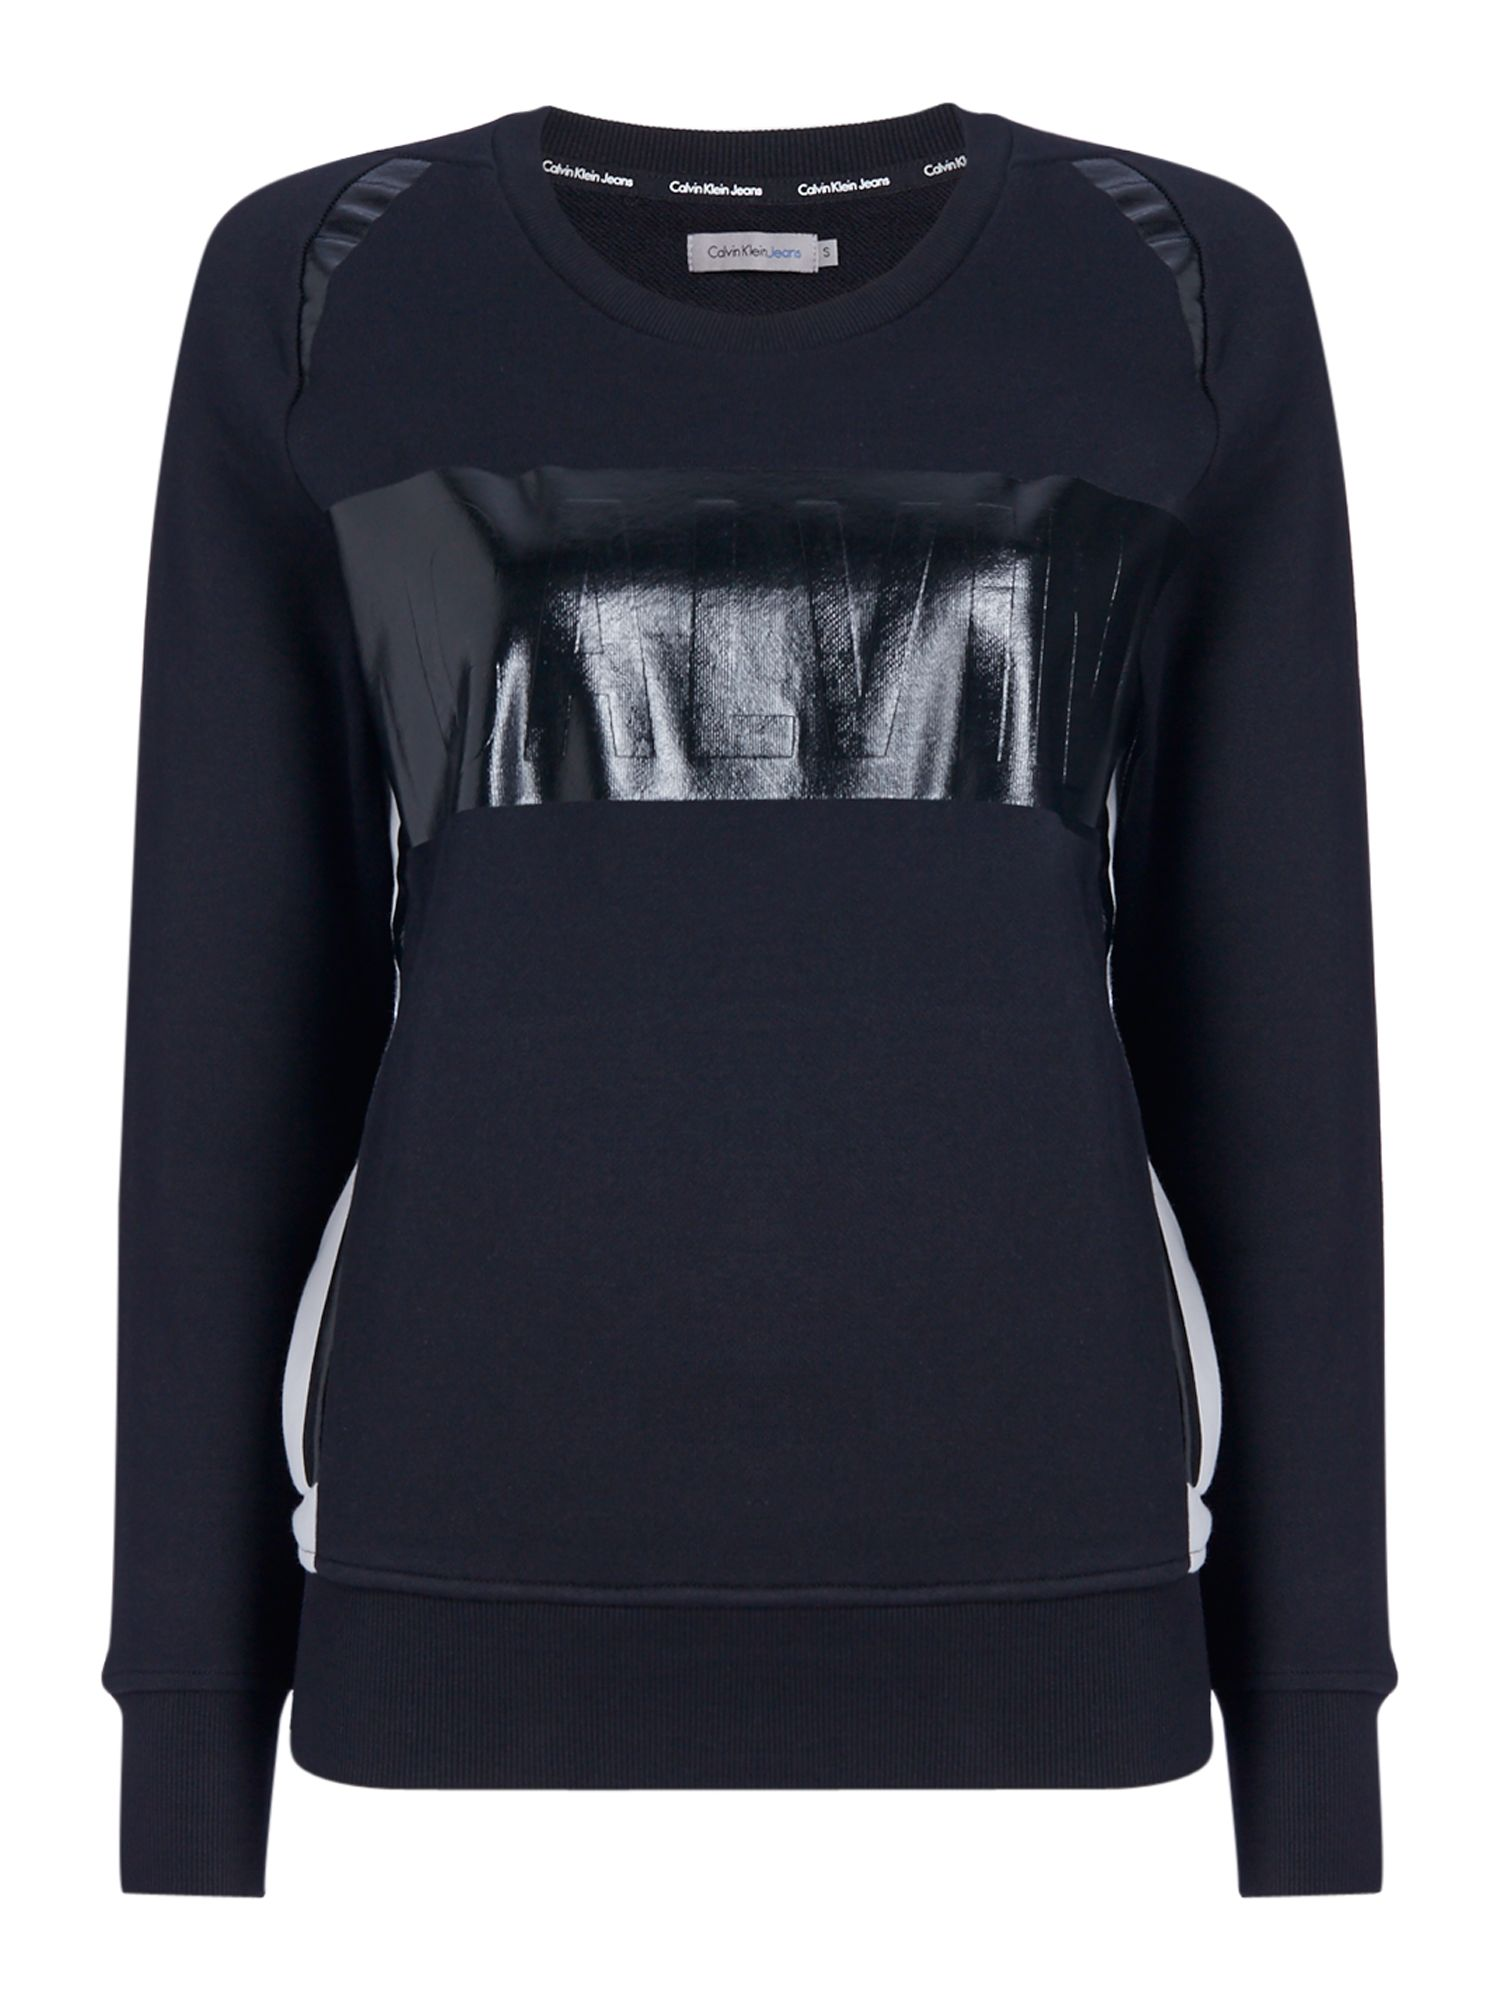 Calvin Klein Long sleeves crew neck calvin logo sweater, Black